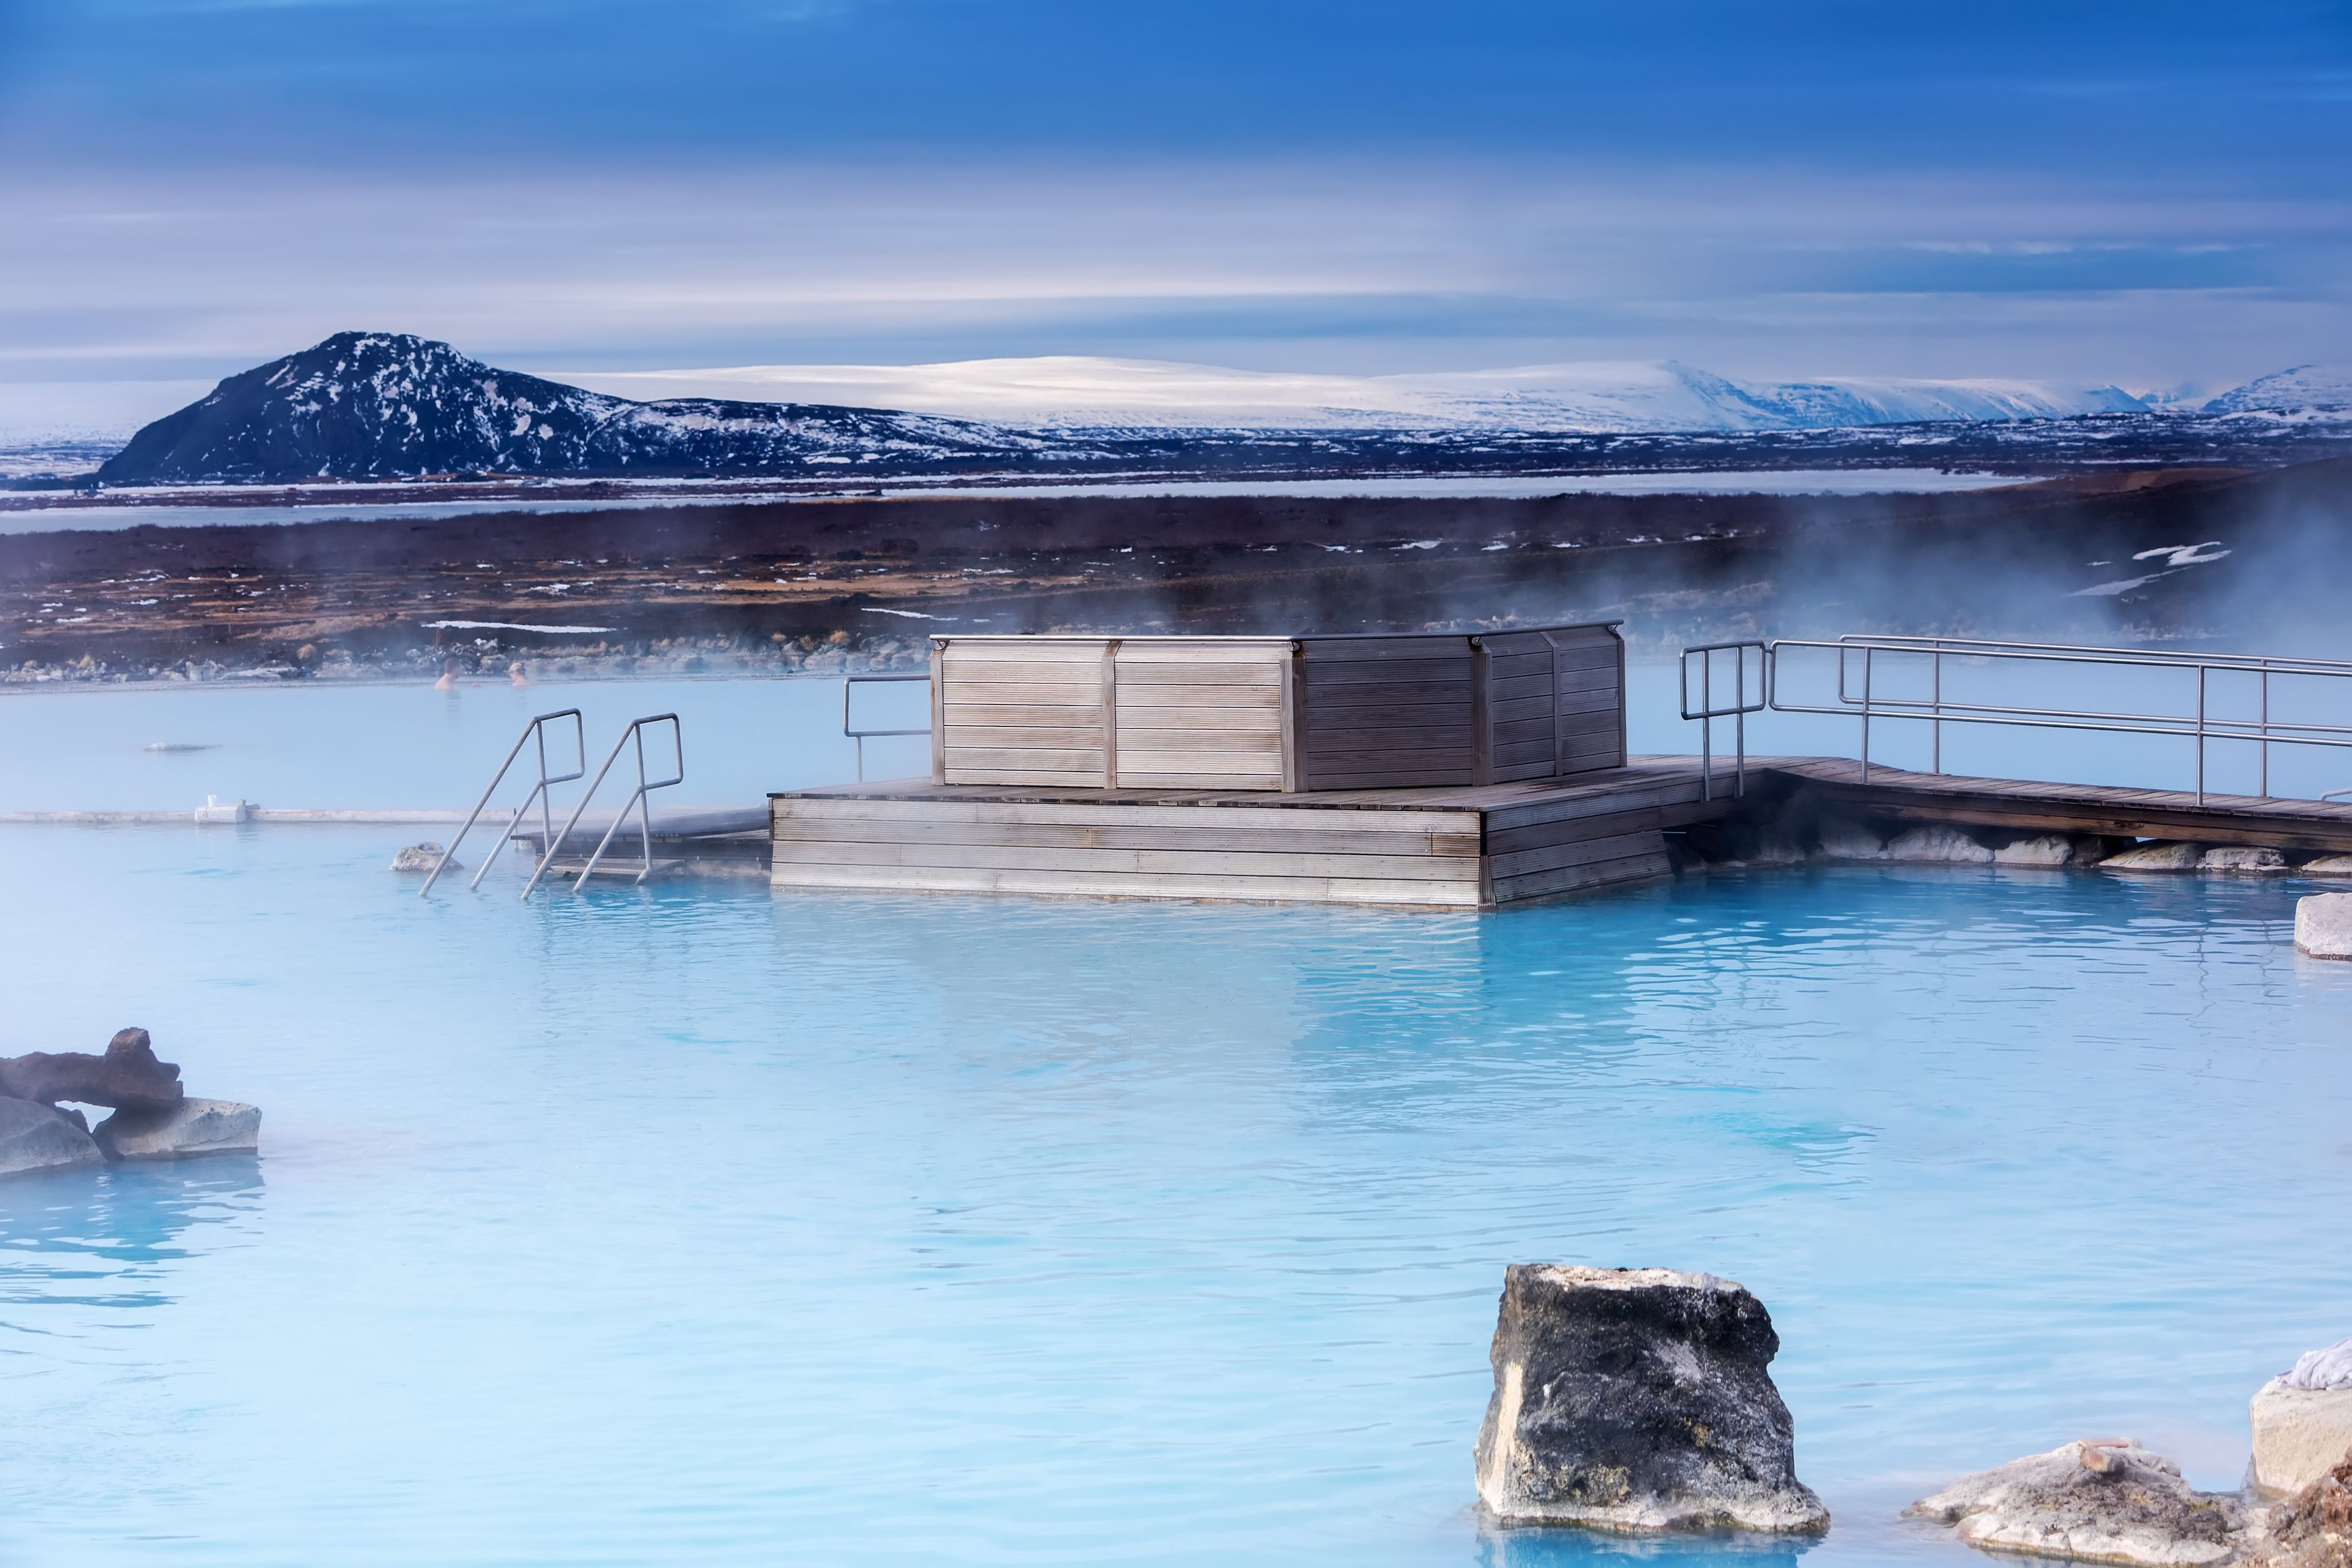 Serene view of the Blue Lagoon in Iceland